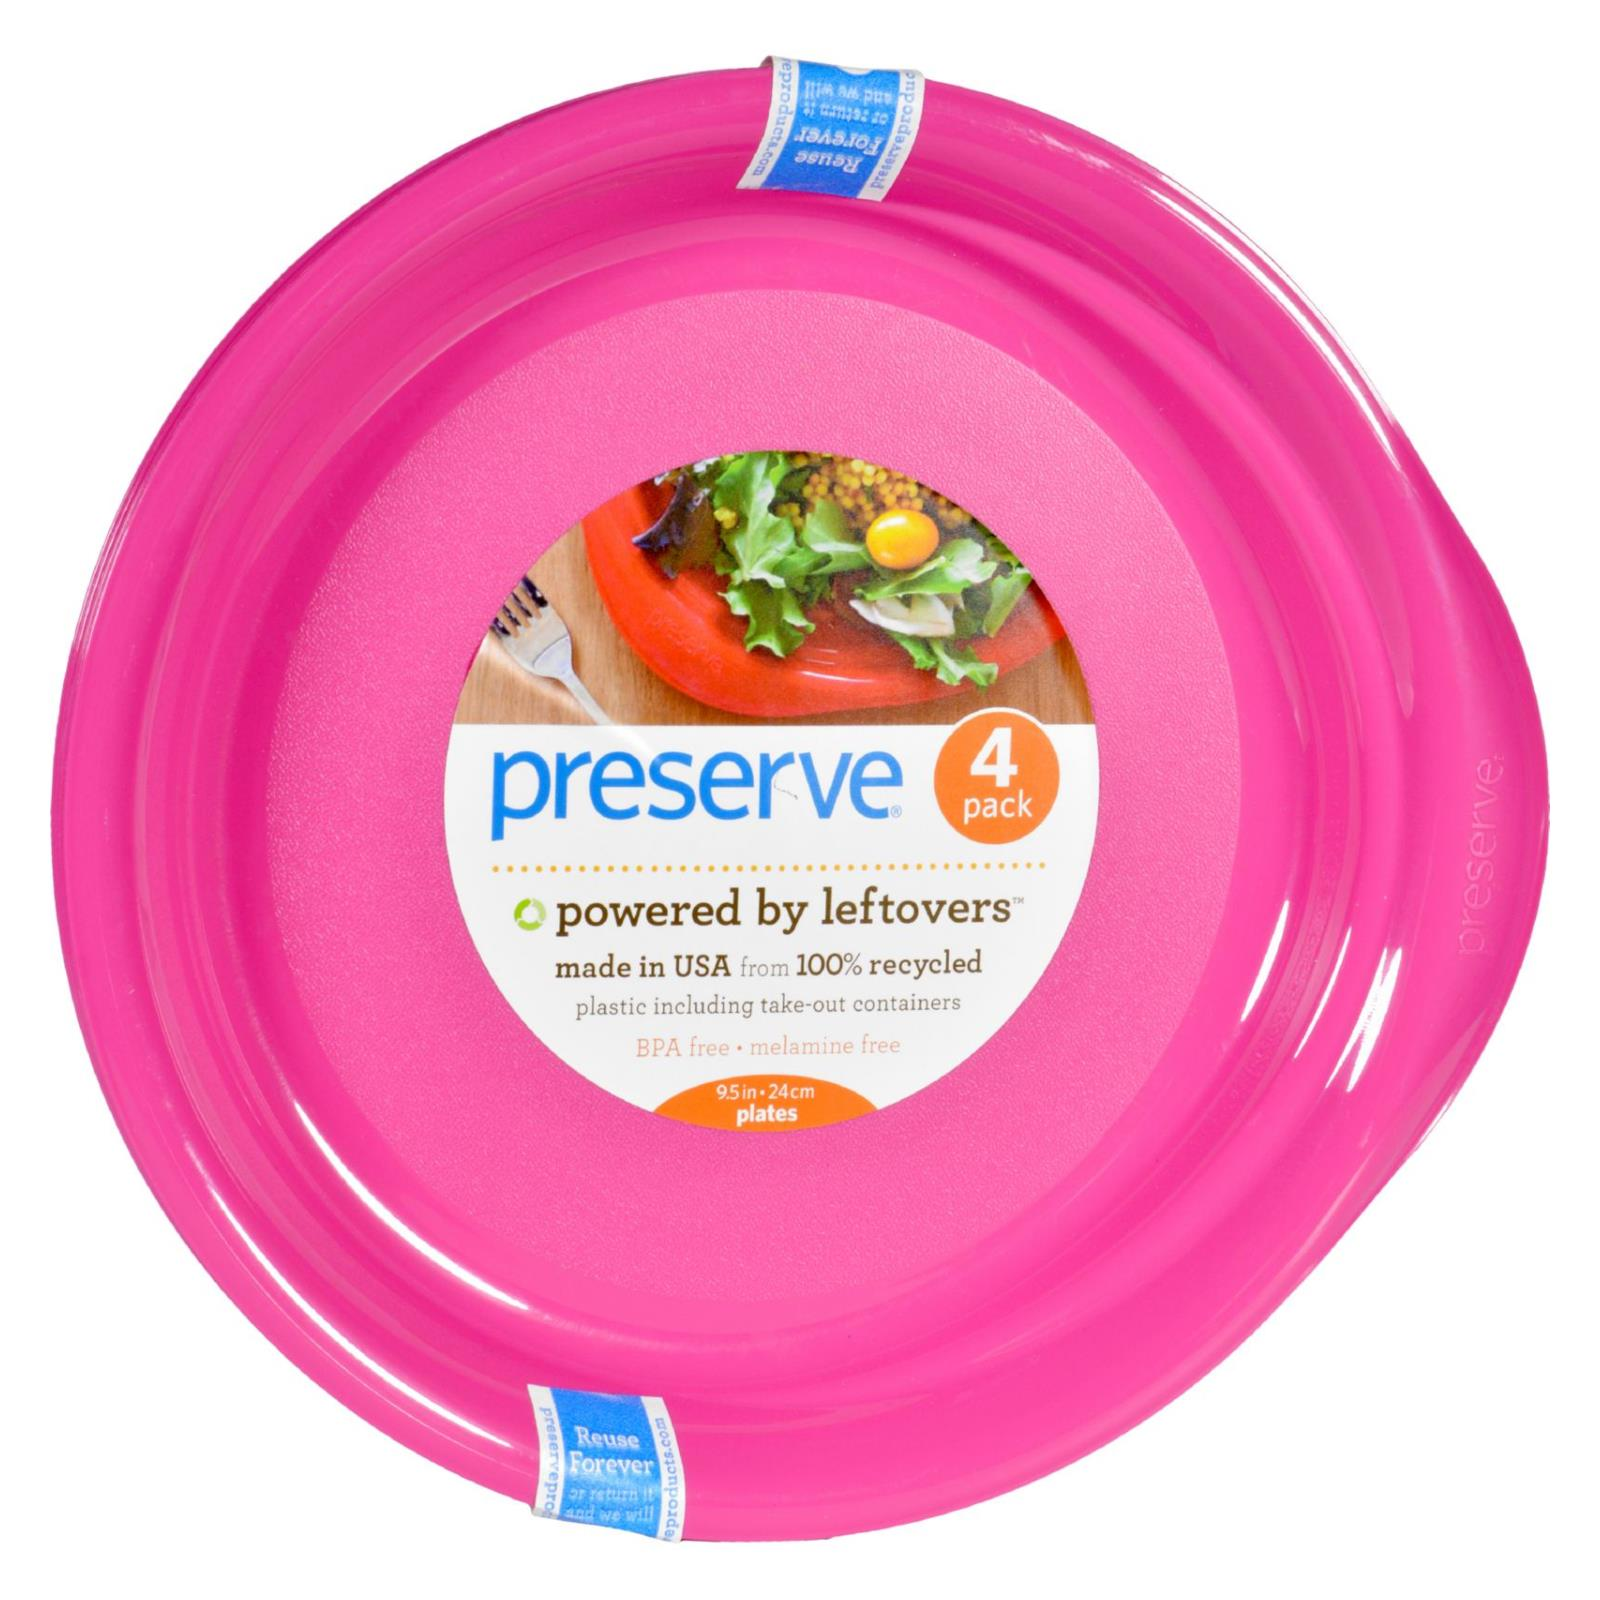 Buy Preserve Everyday Plates - Pink - 4 Pack - 9.5 in - Tableware from Veroeco.com